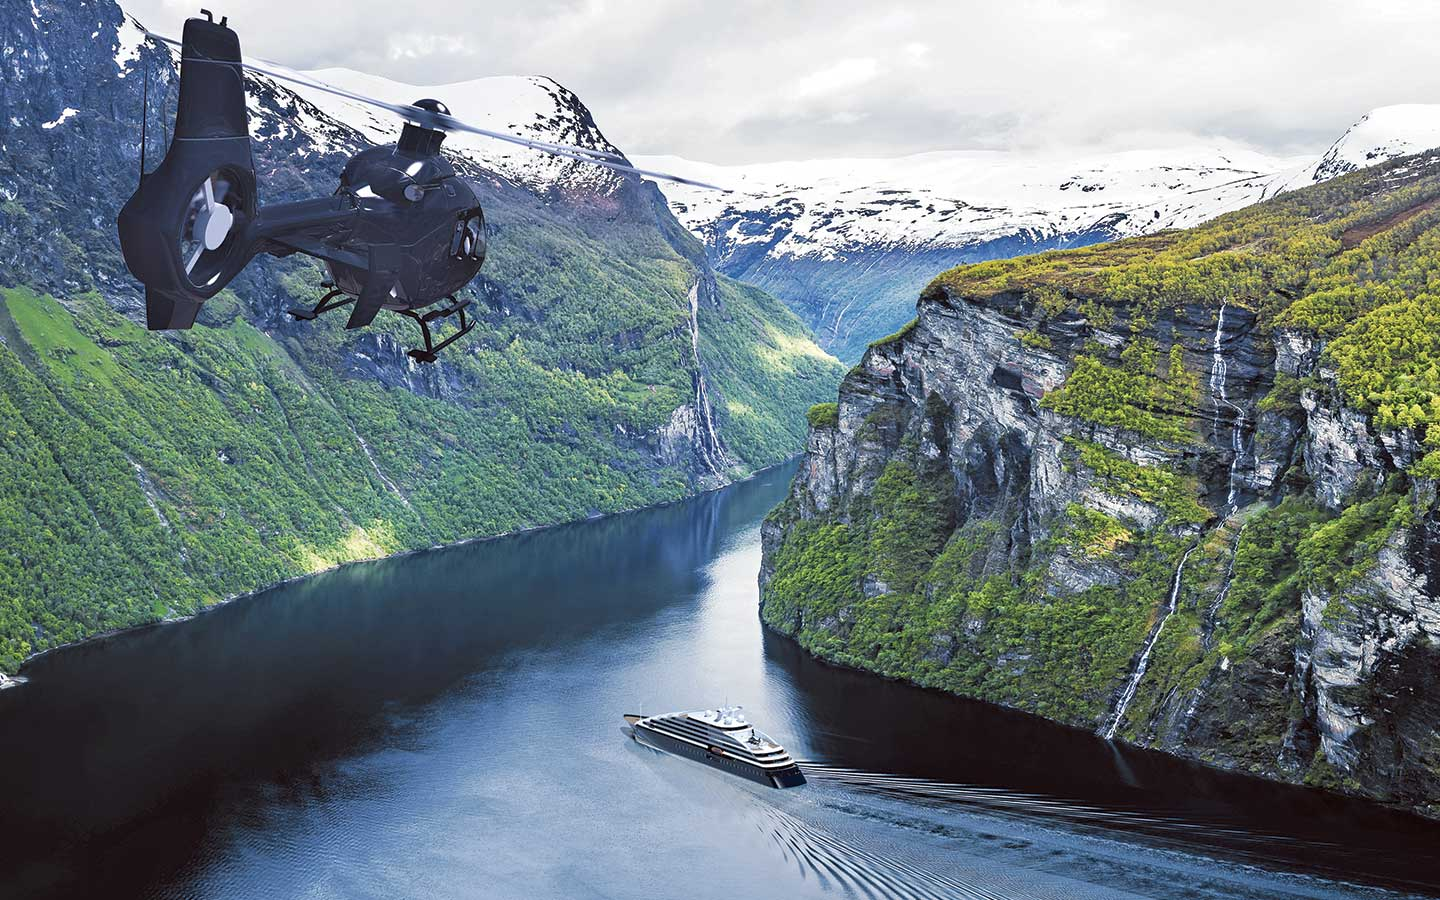 Scenic Eclipse expedition cruise sailing surrounded by snow covered mountains accompanied by a helicopter flying behind